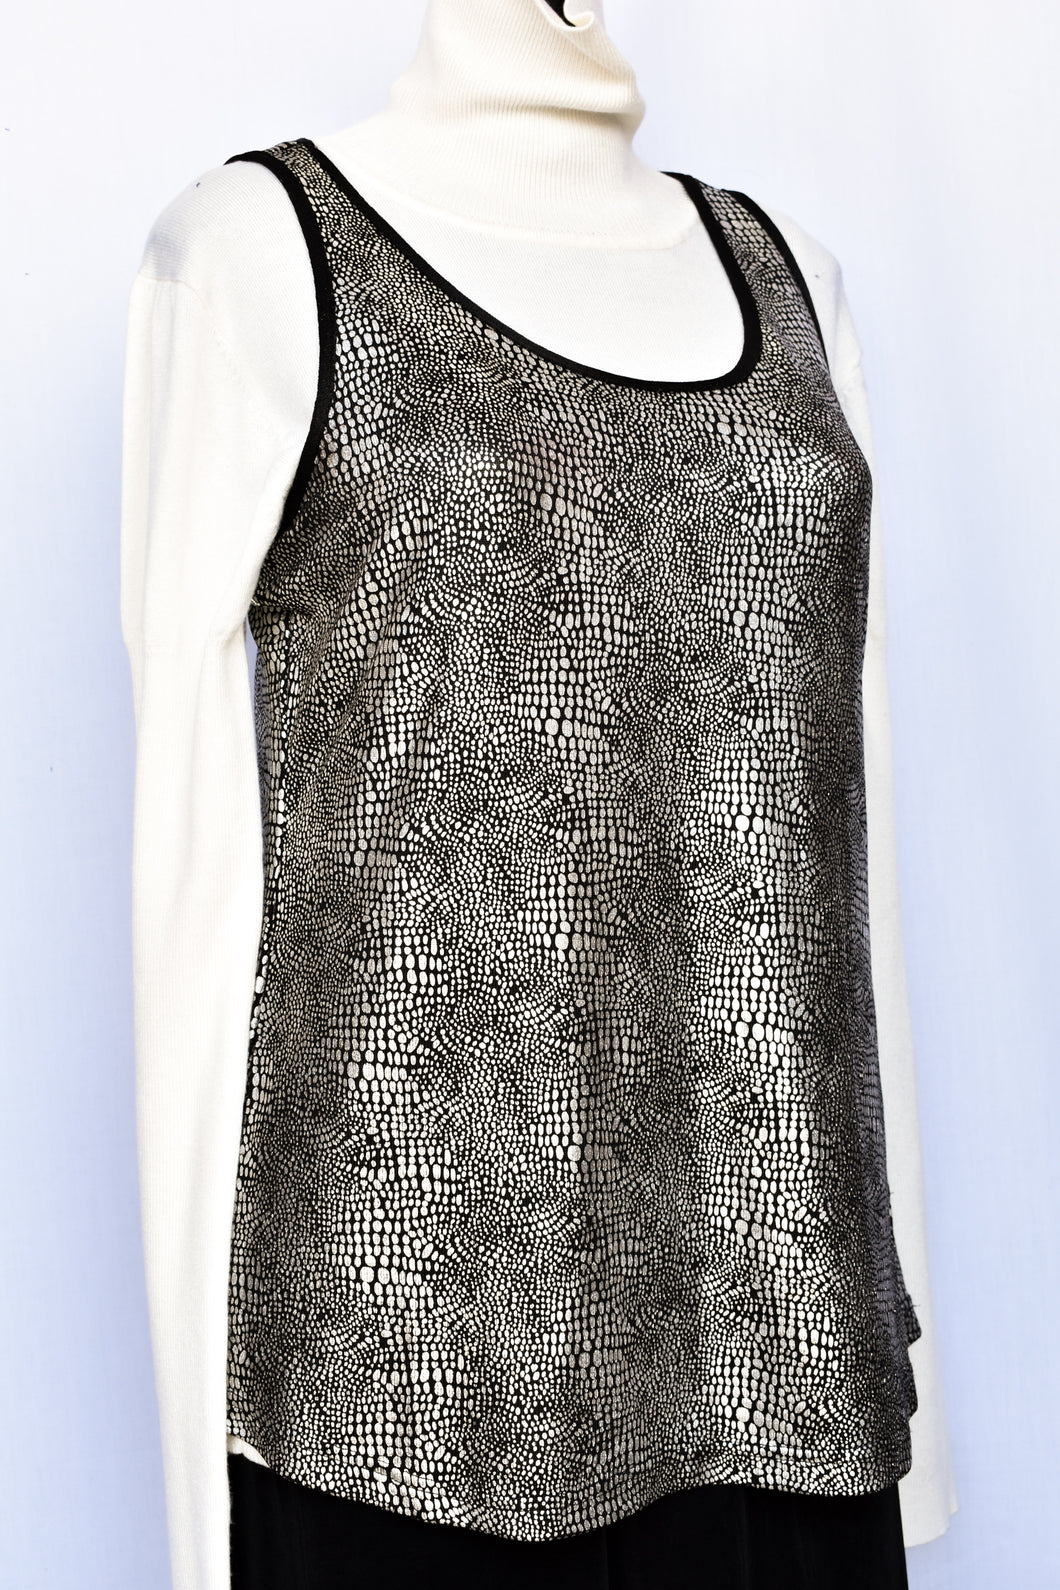 Lemon Tree shimmery singlet top, size 10